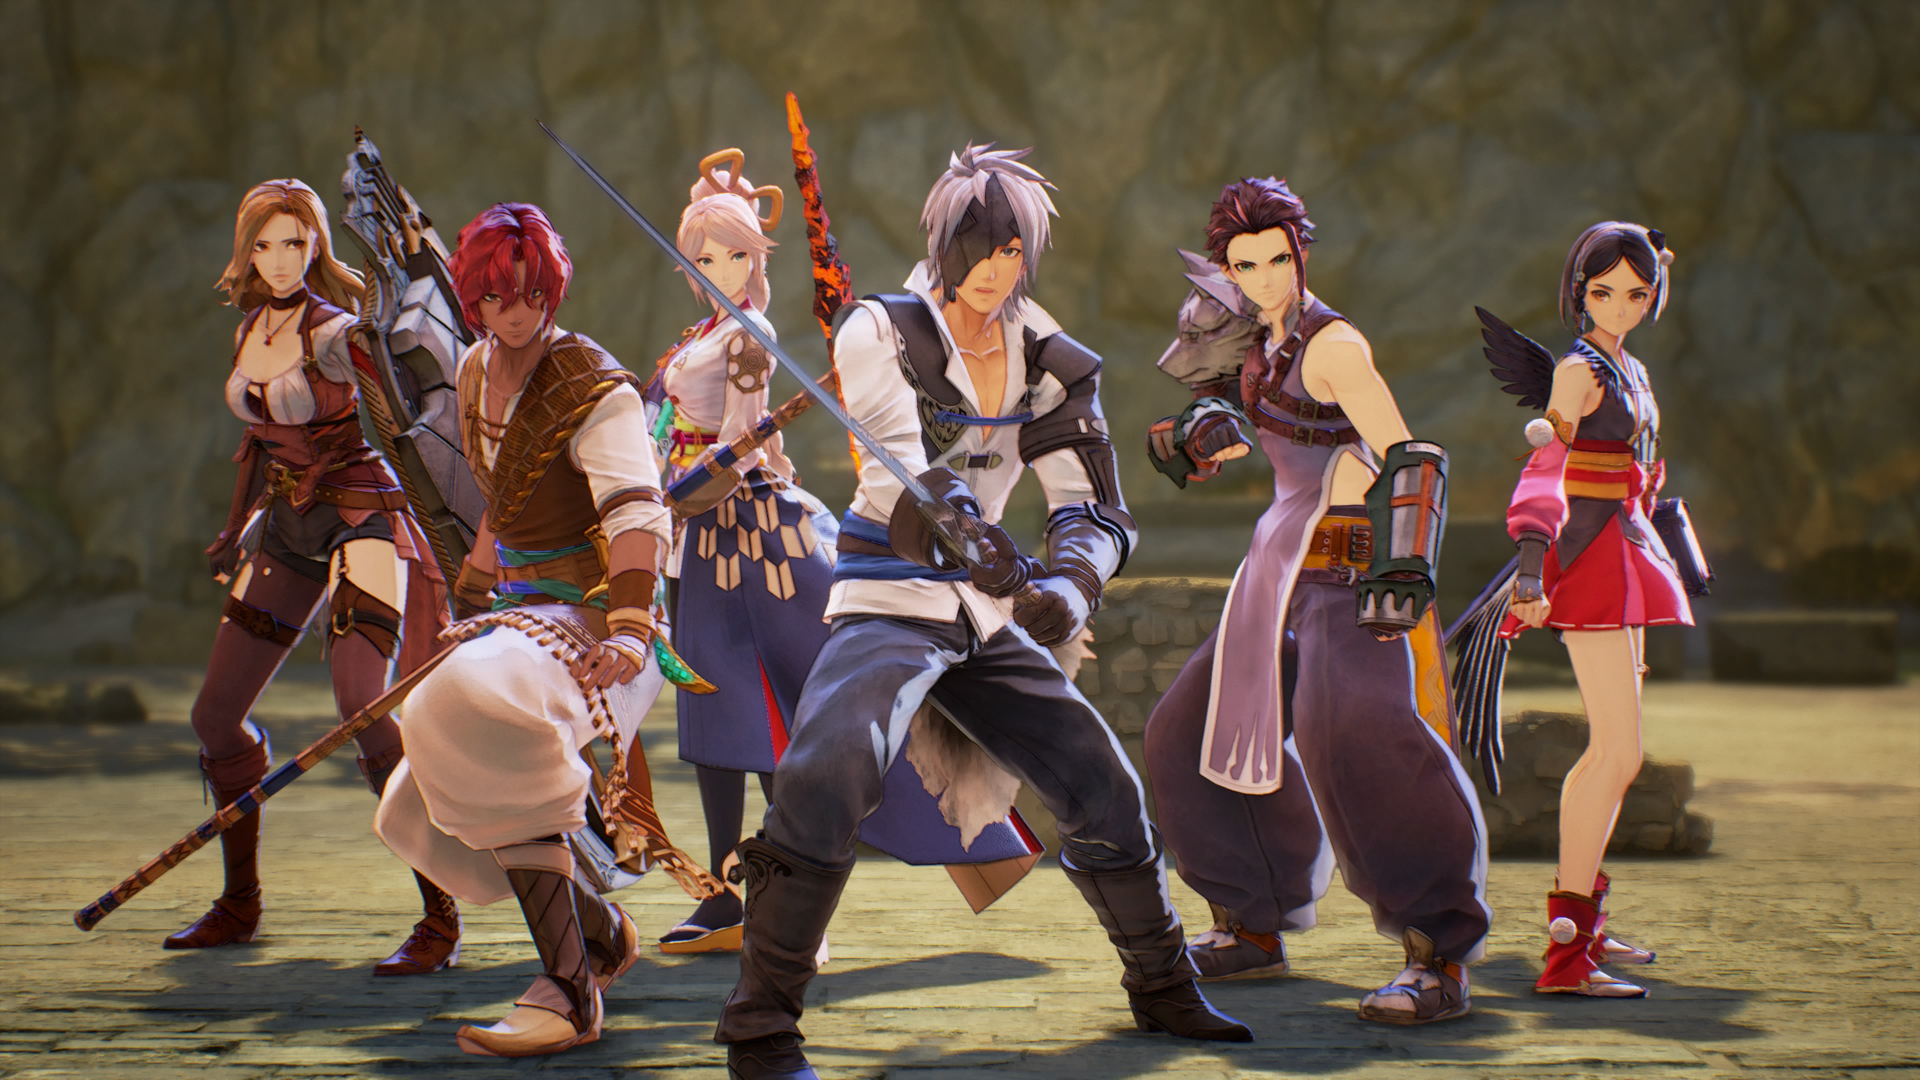 tales of arise outfits